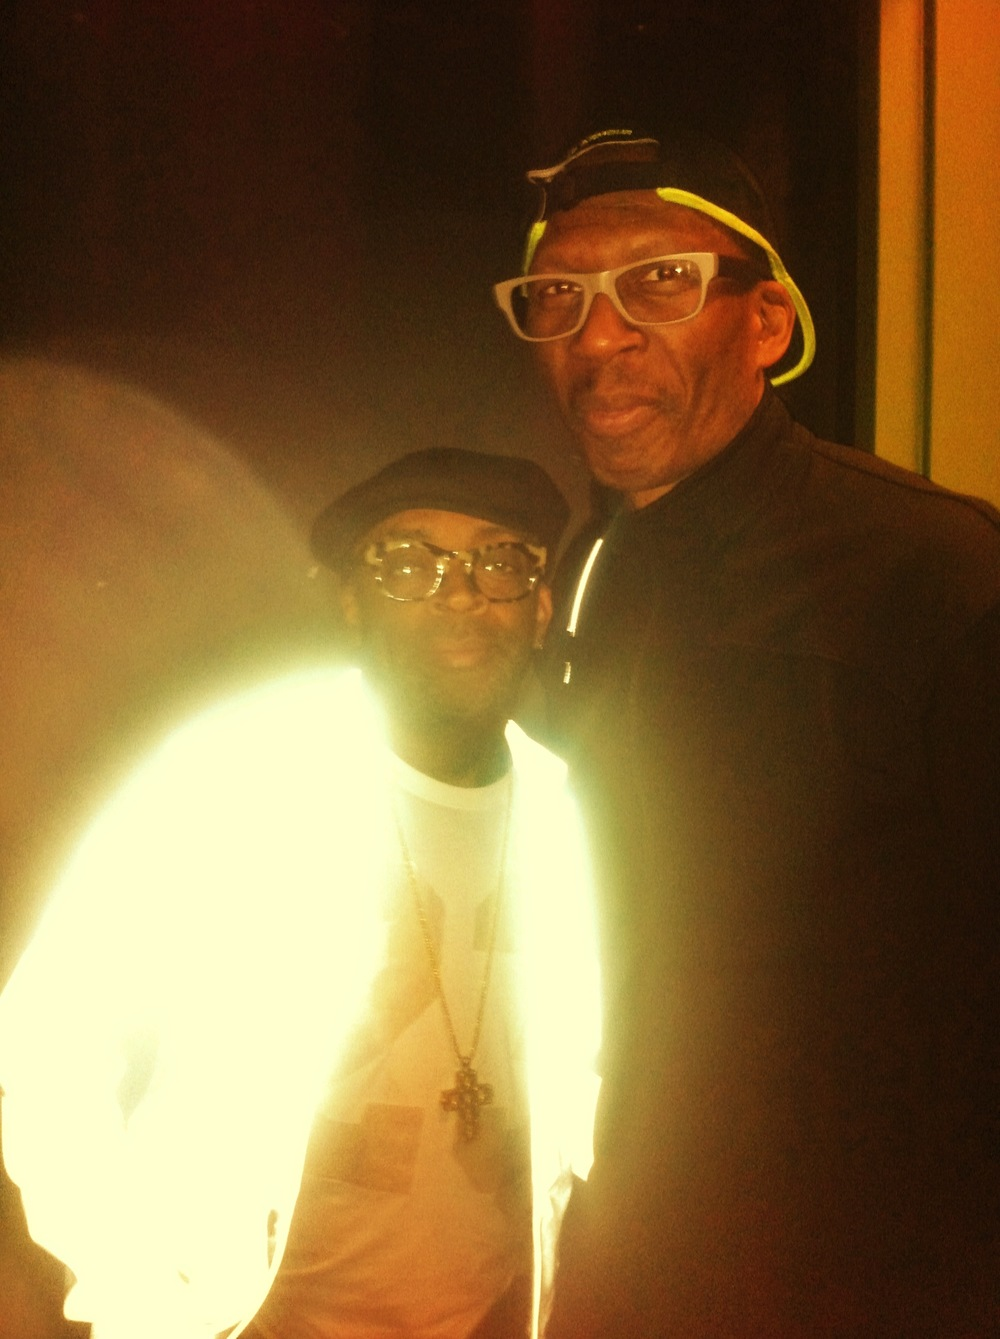 Event Producer for Chicago International Movies and Music Festival. Spike Lee and Public Enemy founder Hank Shocklee at CIMM Fest 2015.